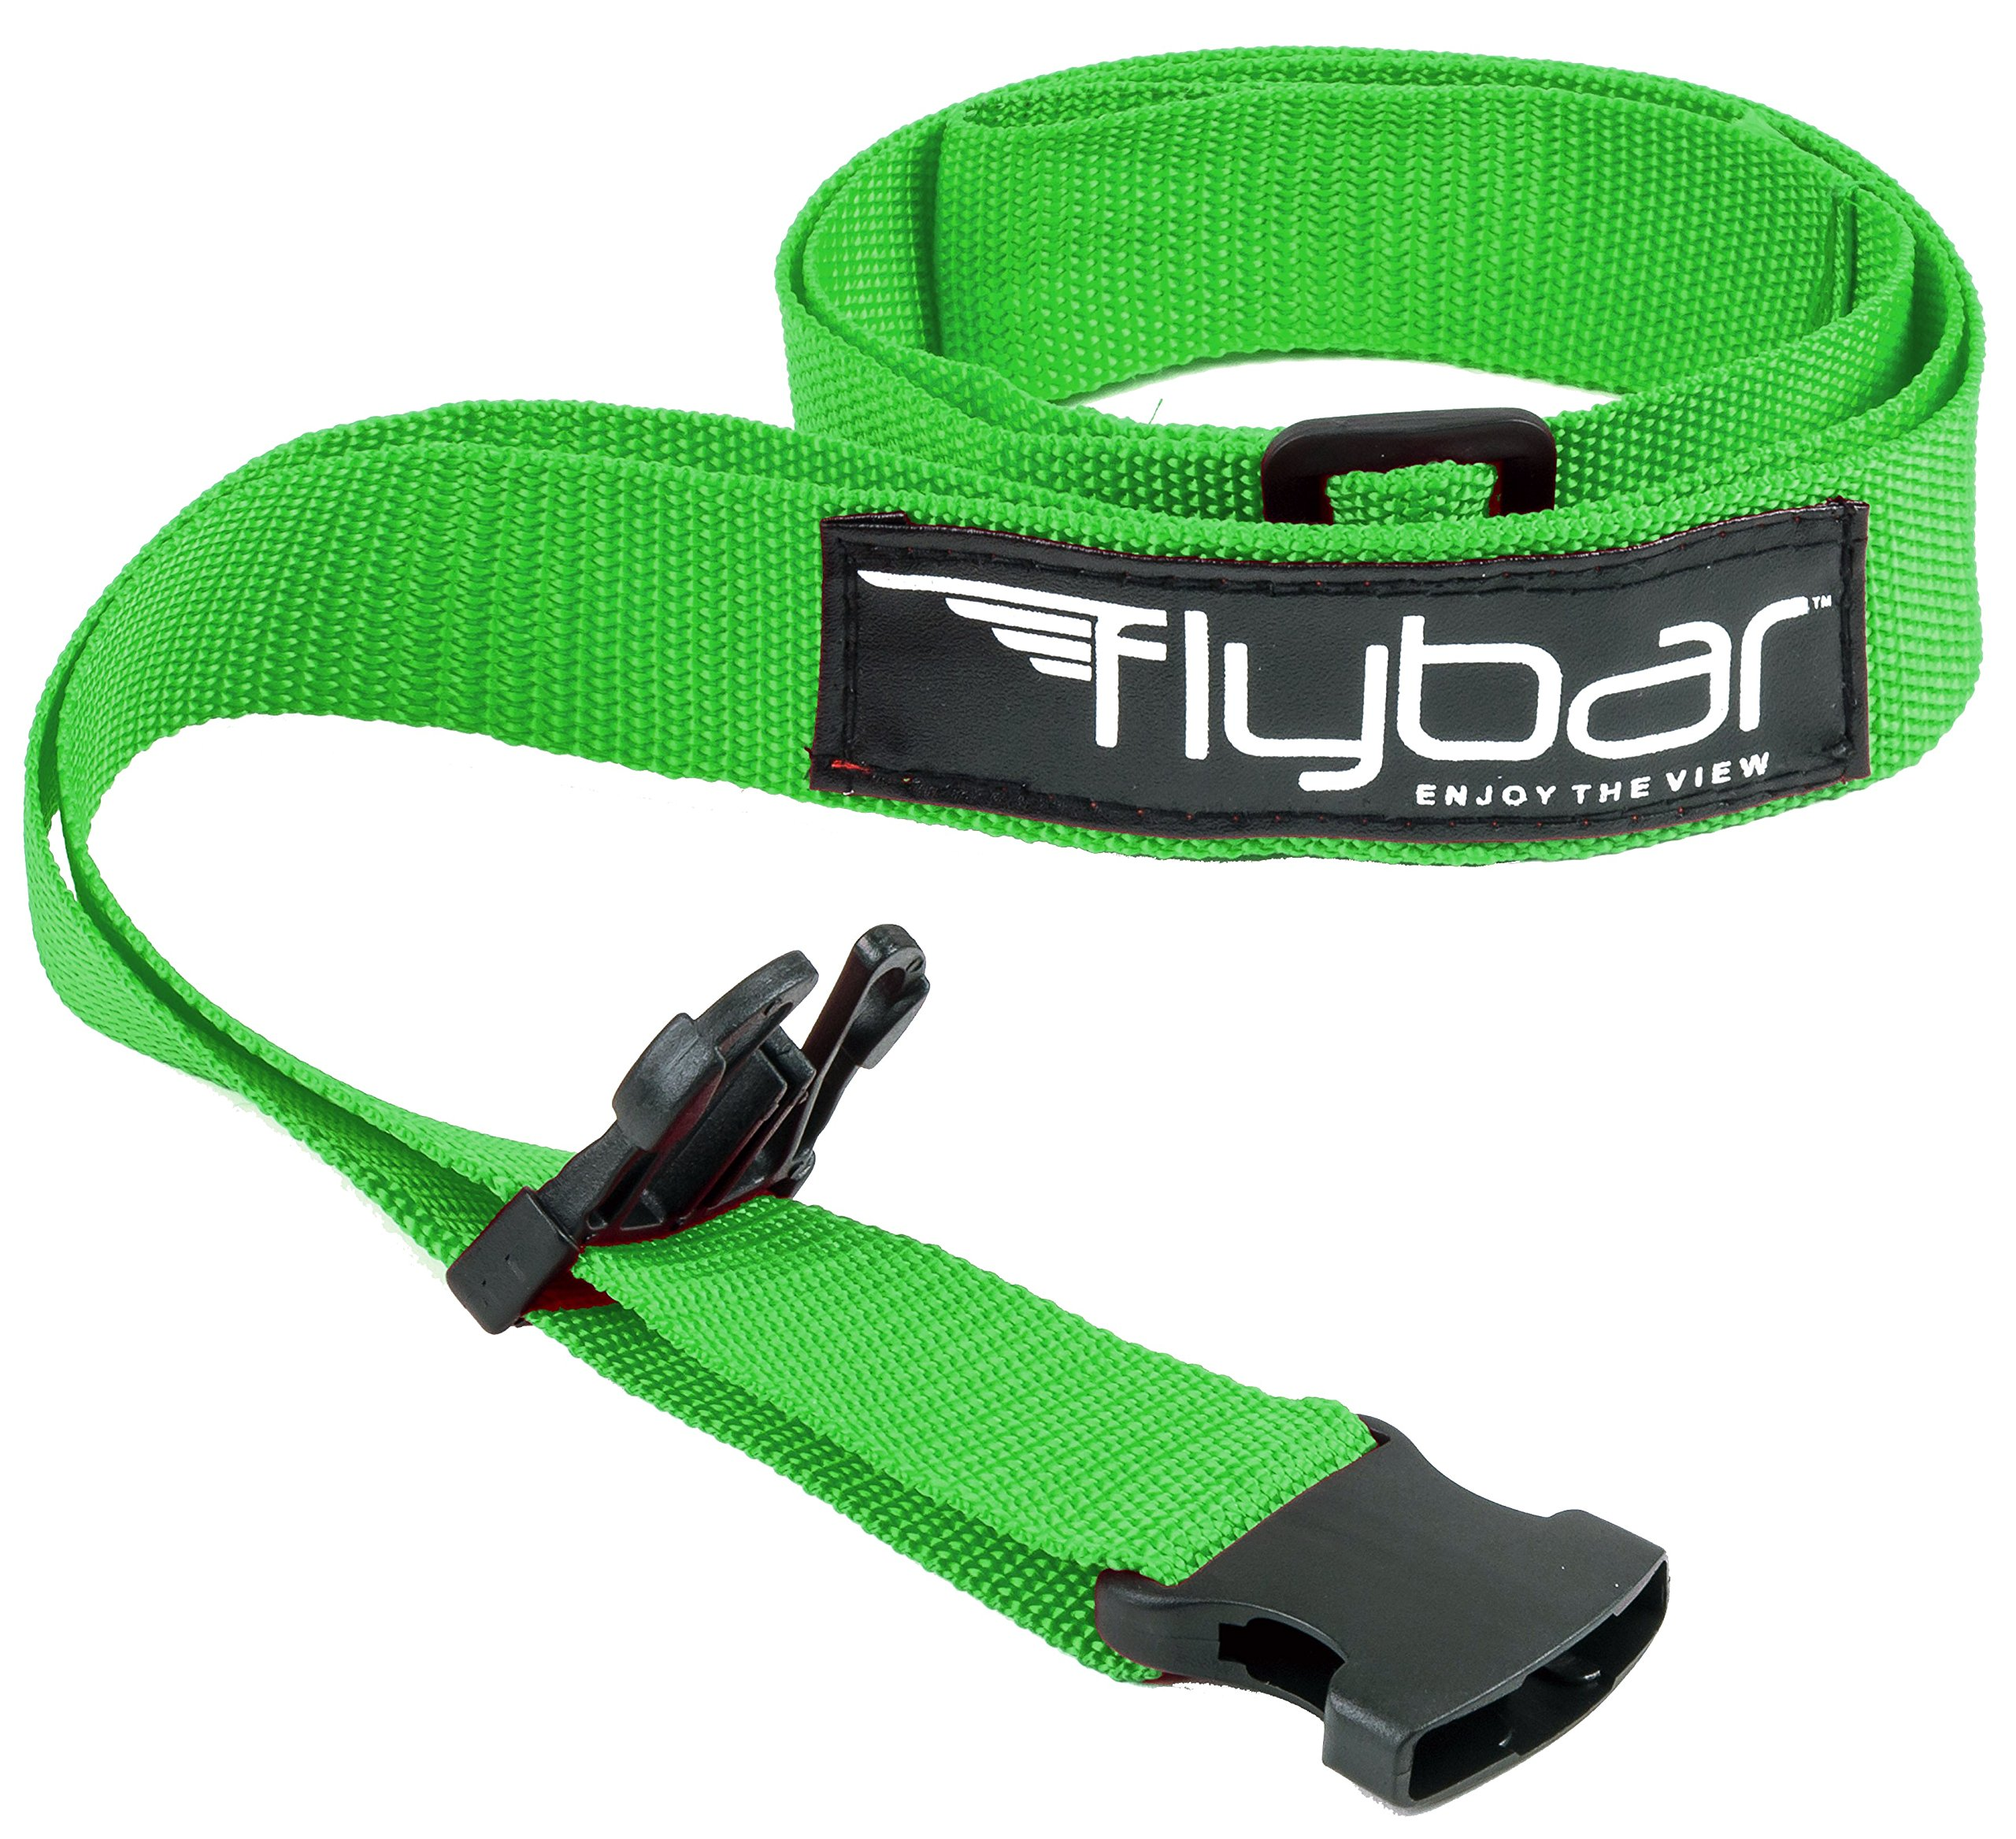 Flybar Foam Maverick Pogo Stick with Quick Clip Pogo Carry Strap (Green/Black - Green Strap) by Flybar (Image #2)